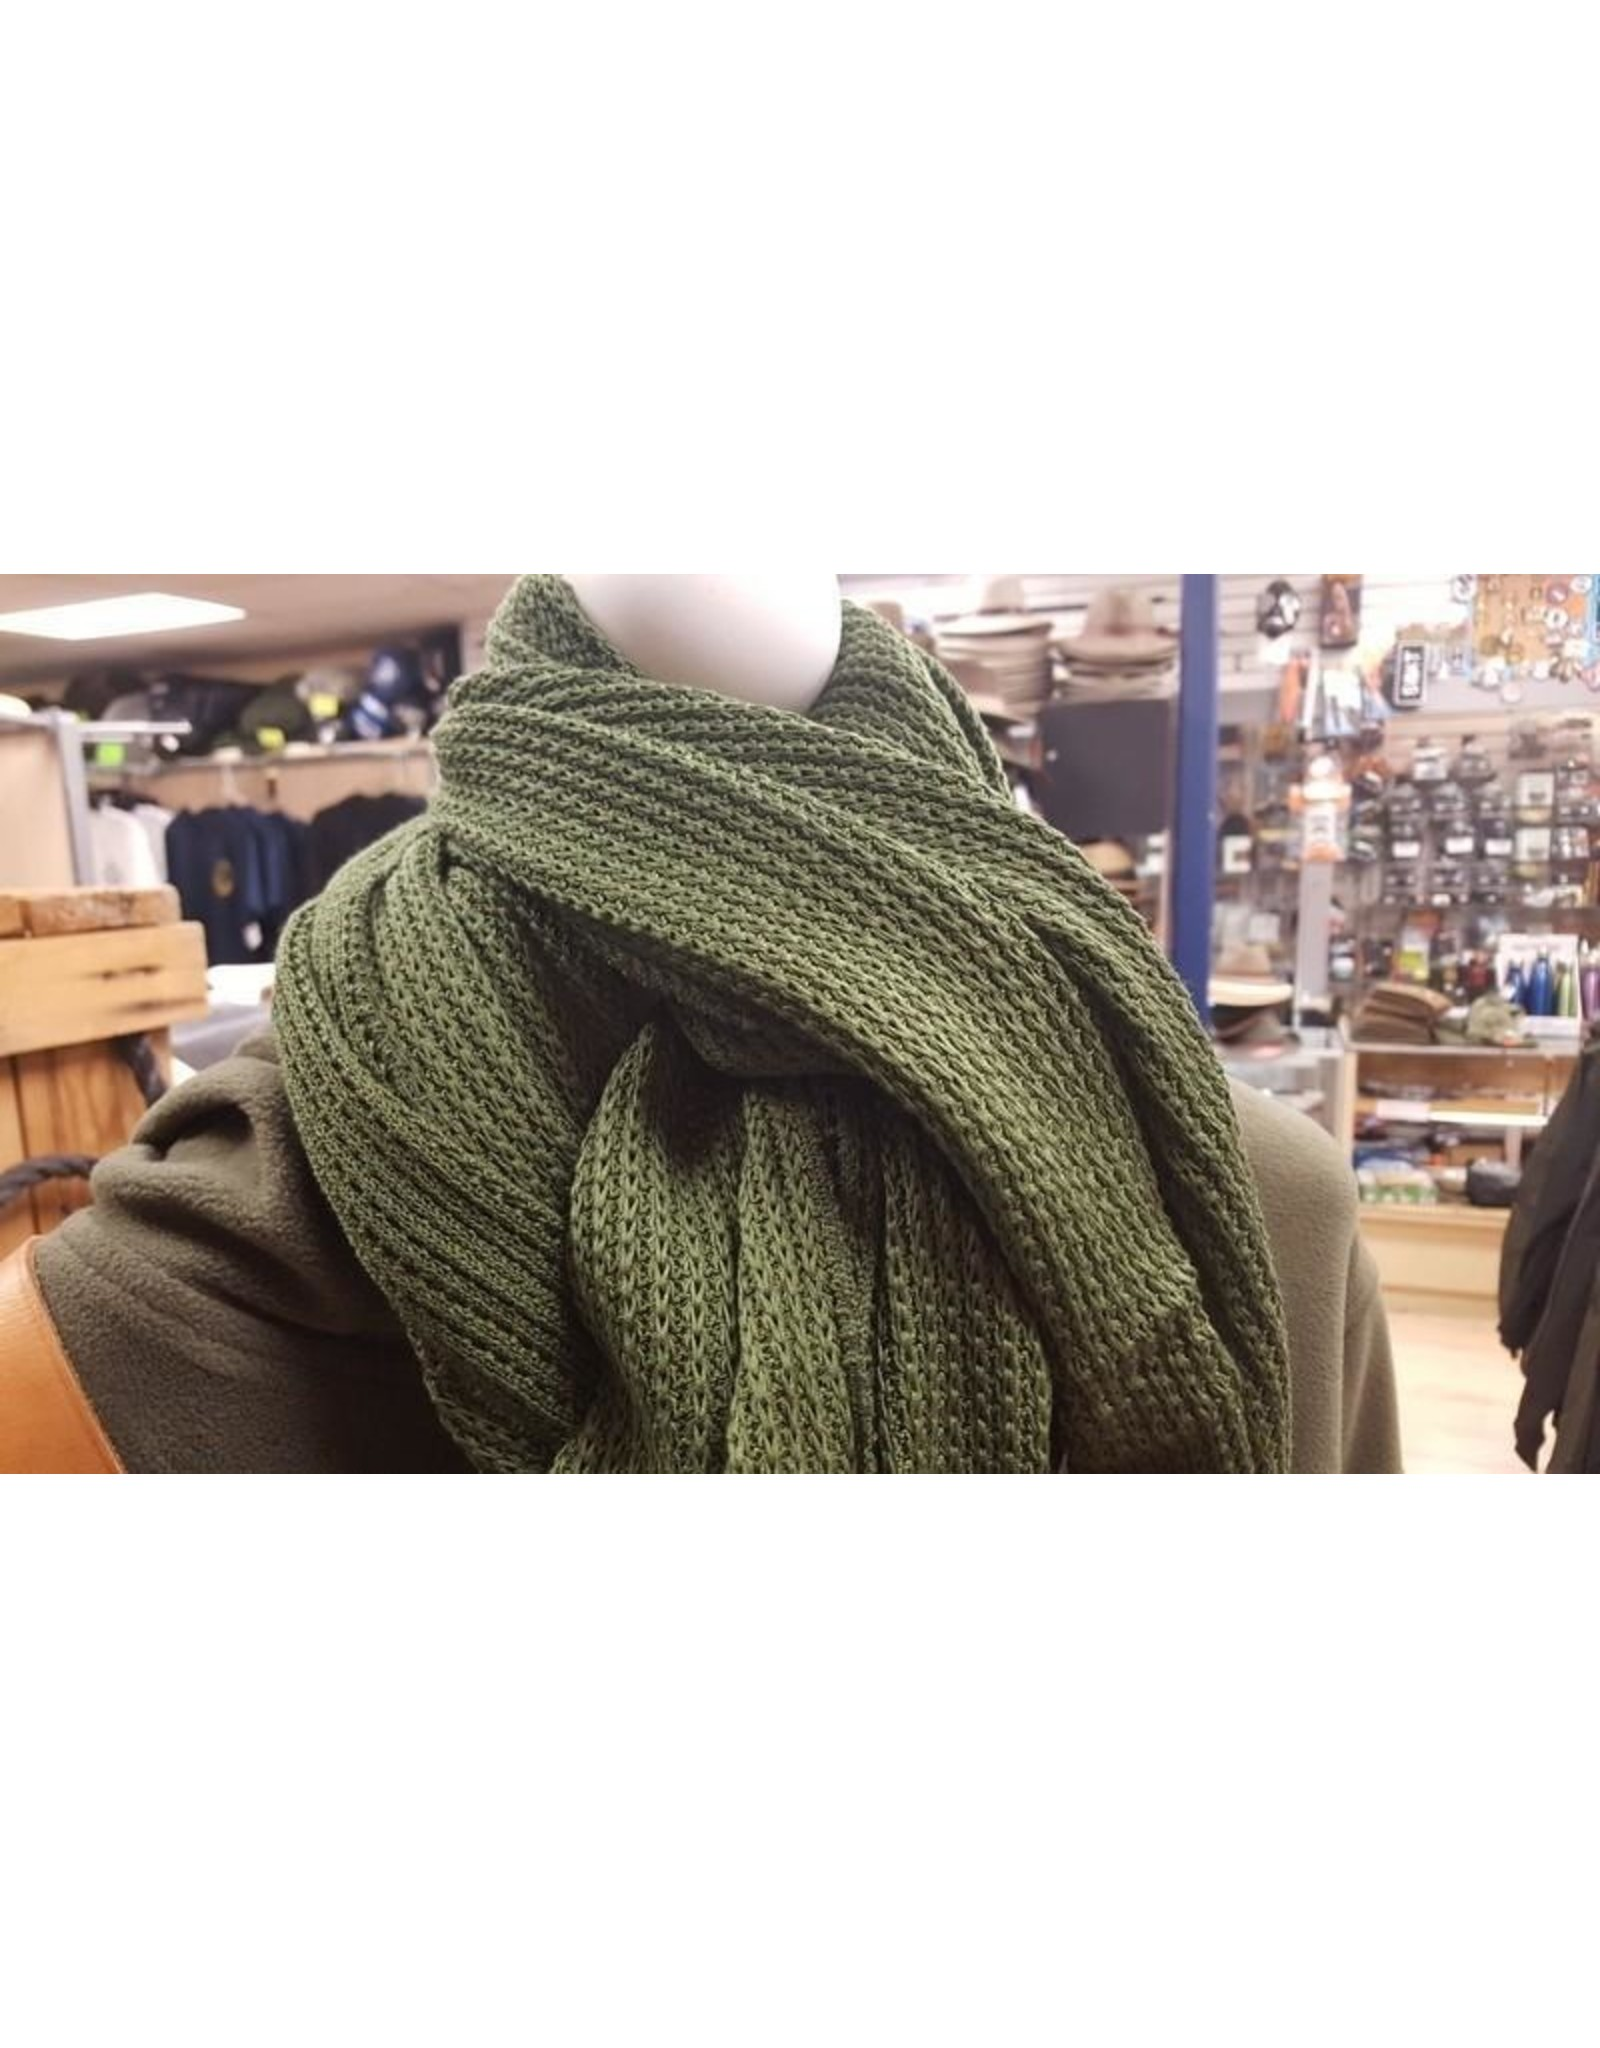 SURPLUS CANADIAN COTTON OLIVE SCARF-NEW